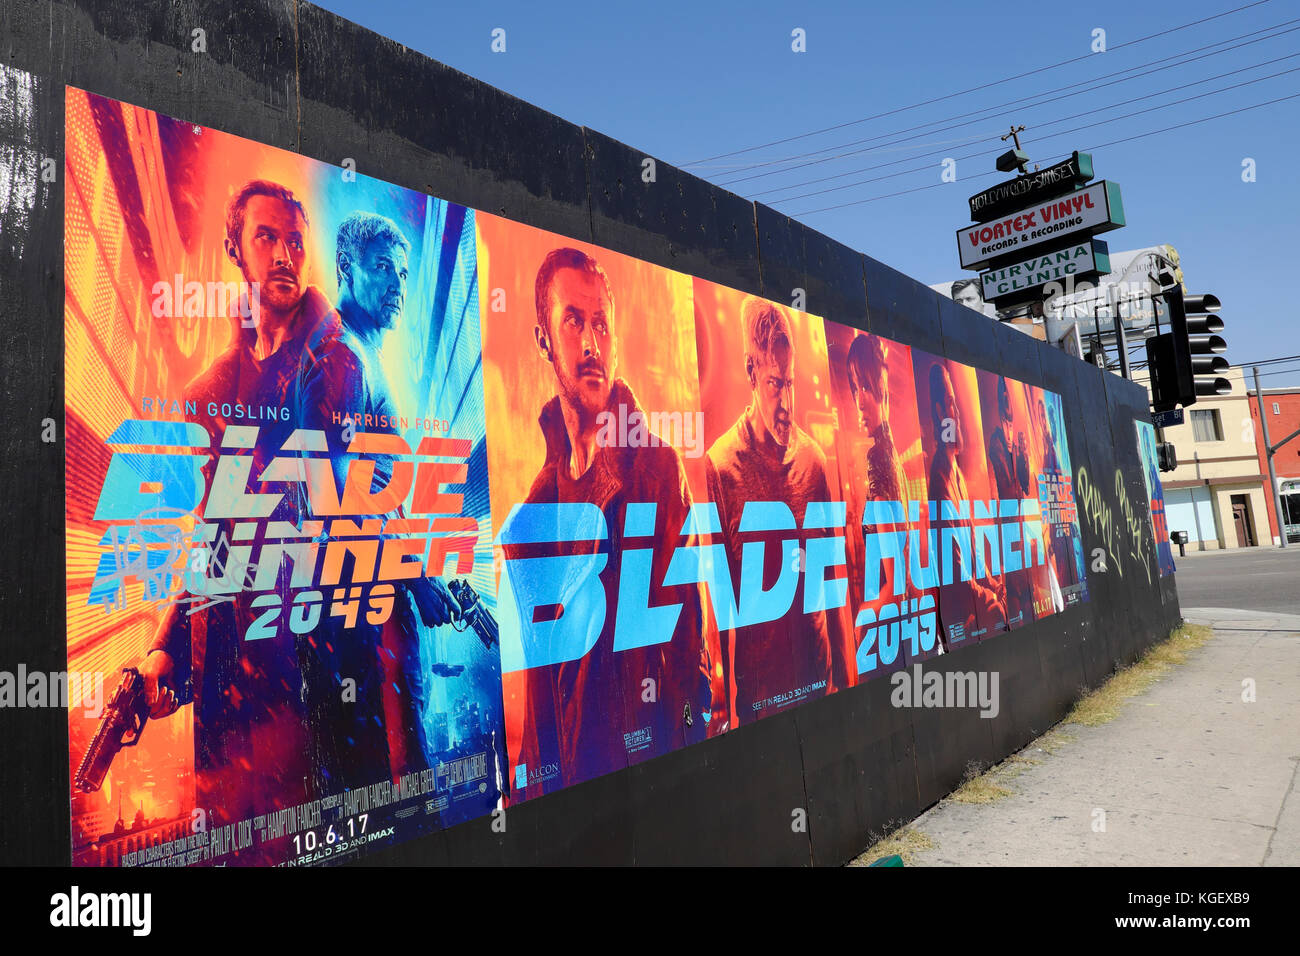 'BLADE RUNNER 2049' advertising poster billboard on a hoarding at Hollywood and Sunset Boulevard in Los - Stock Image